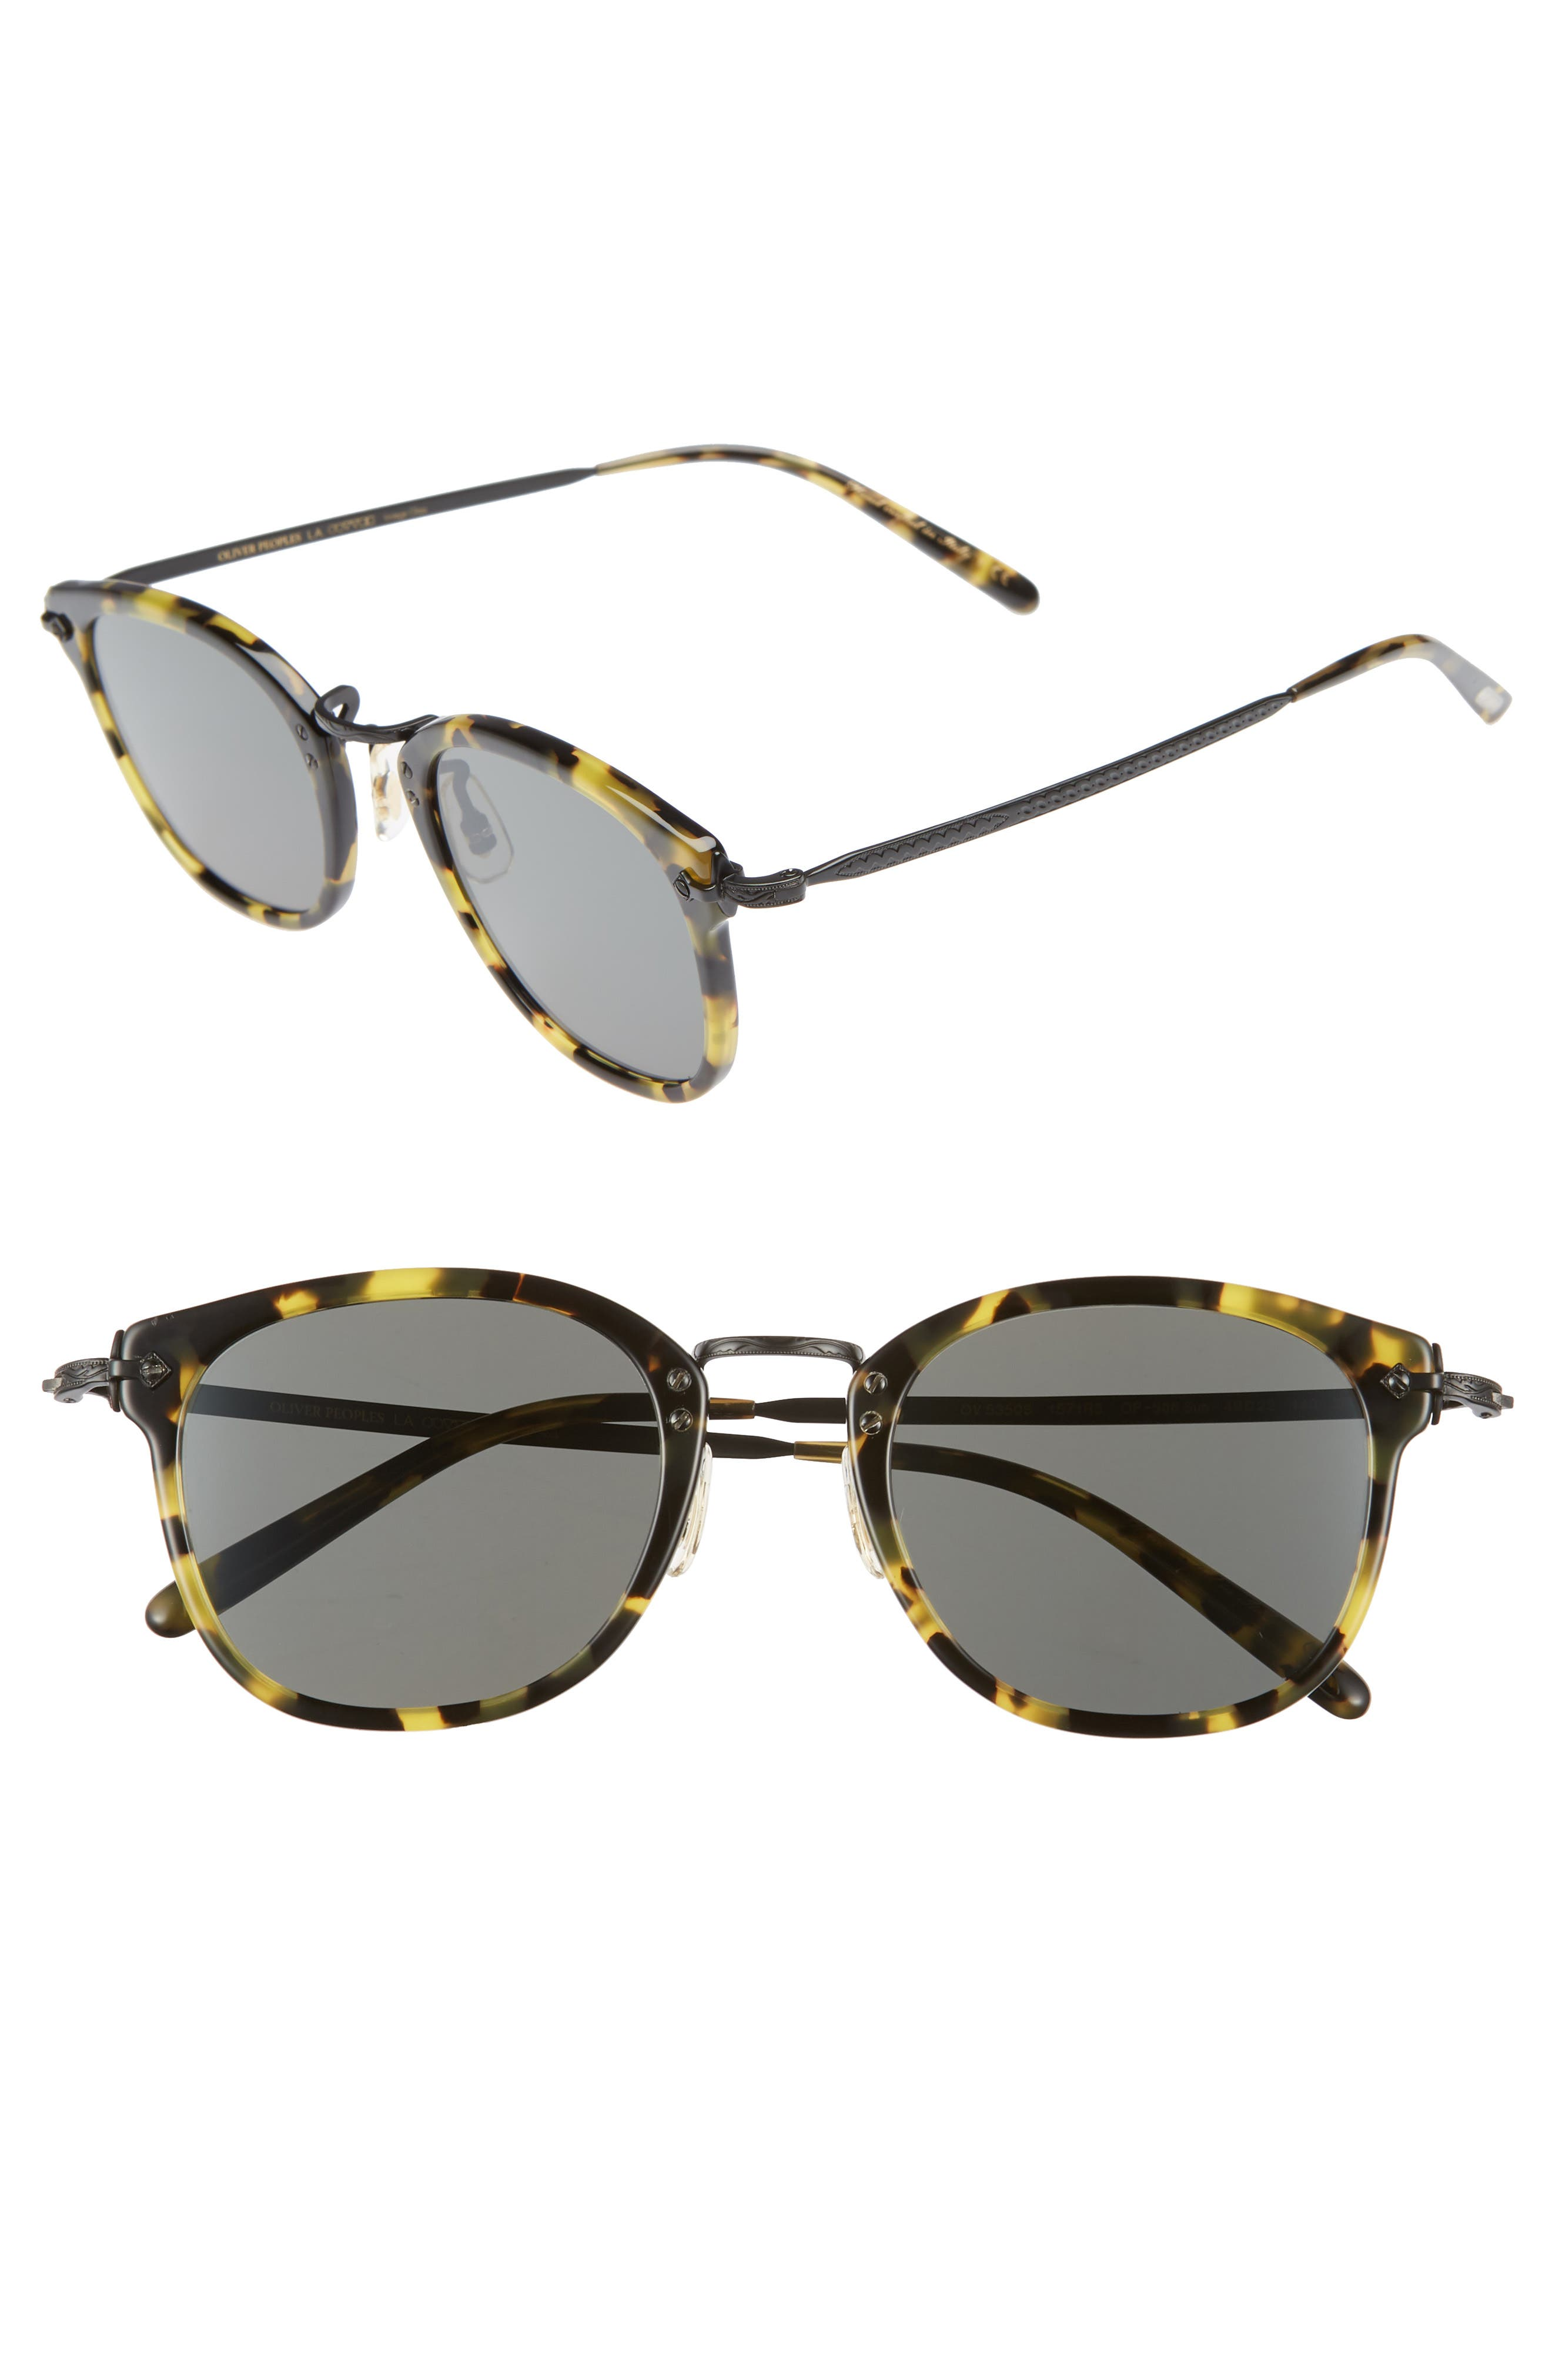 49mm Round Sunglasses,                             Main thumbnail 1, color,                             Vintage Dark Tortoise